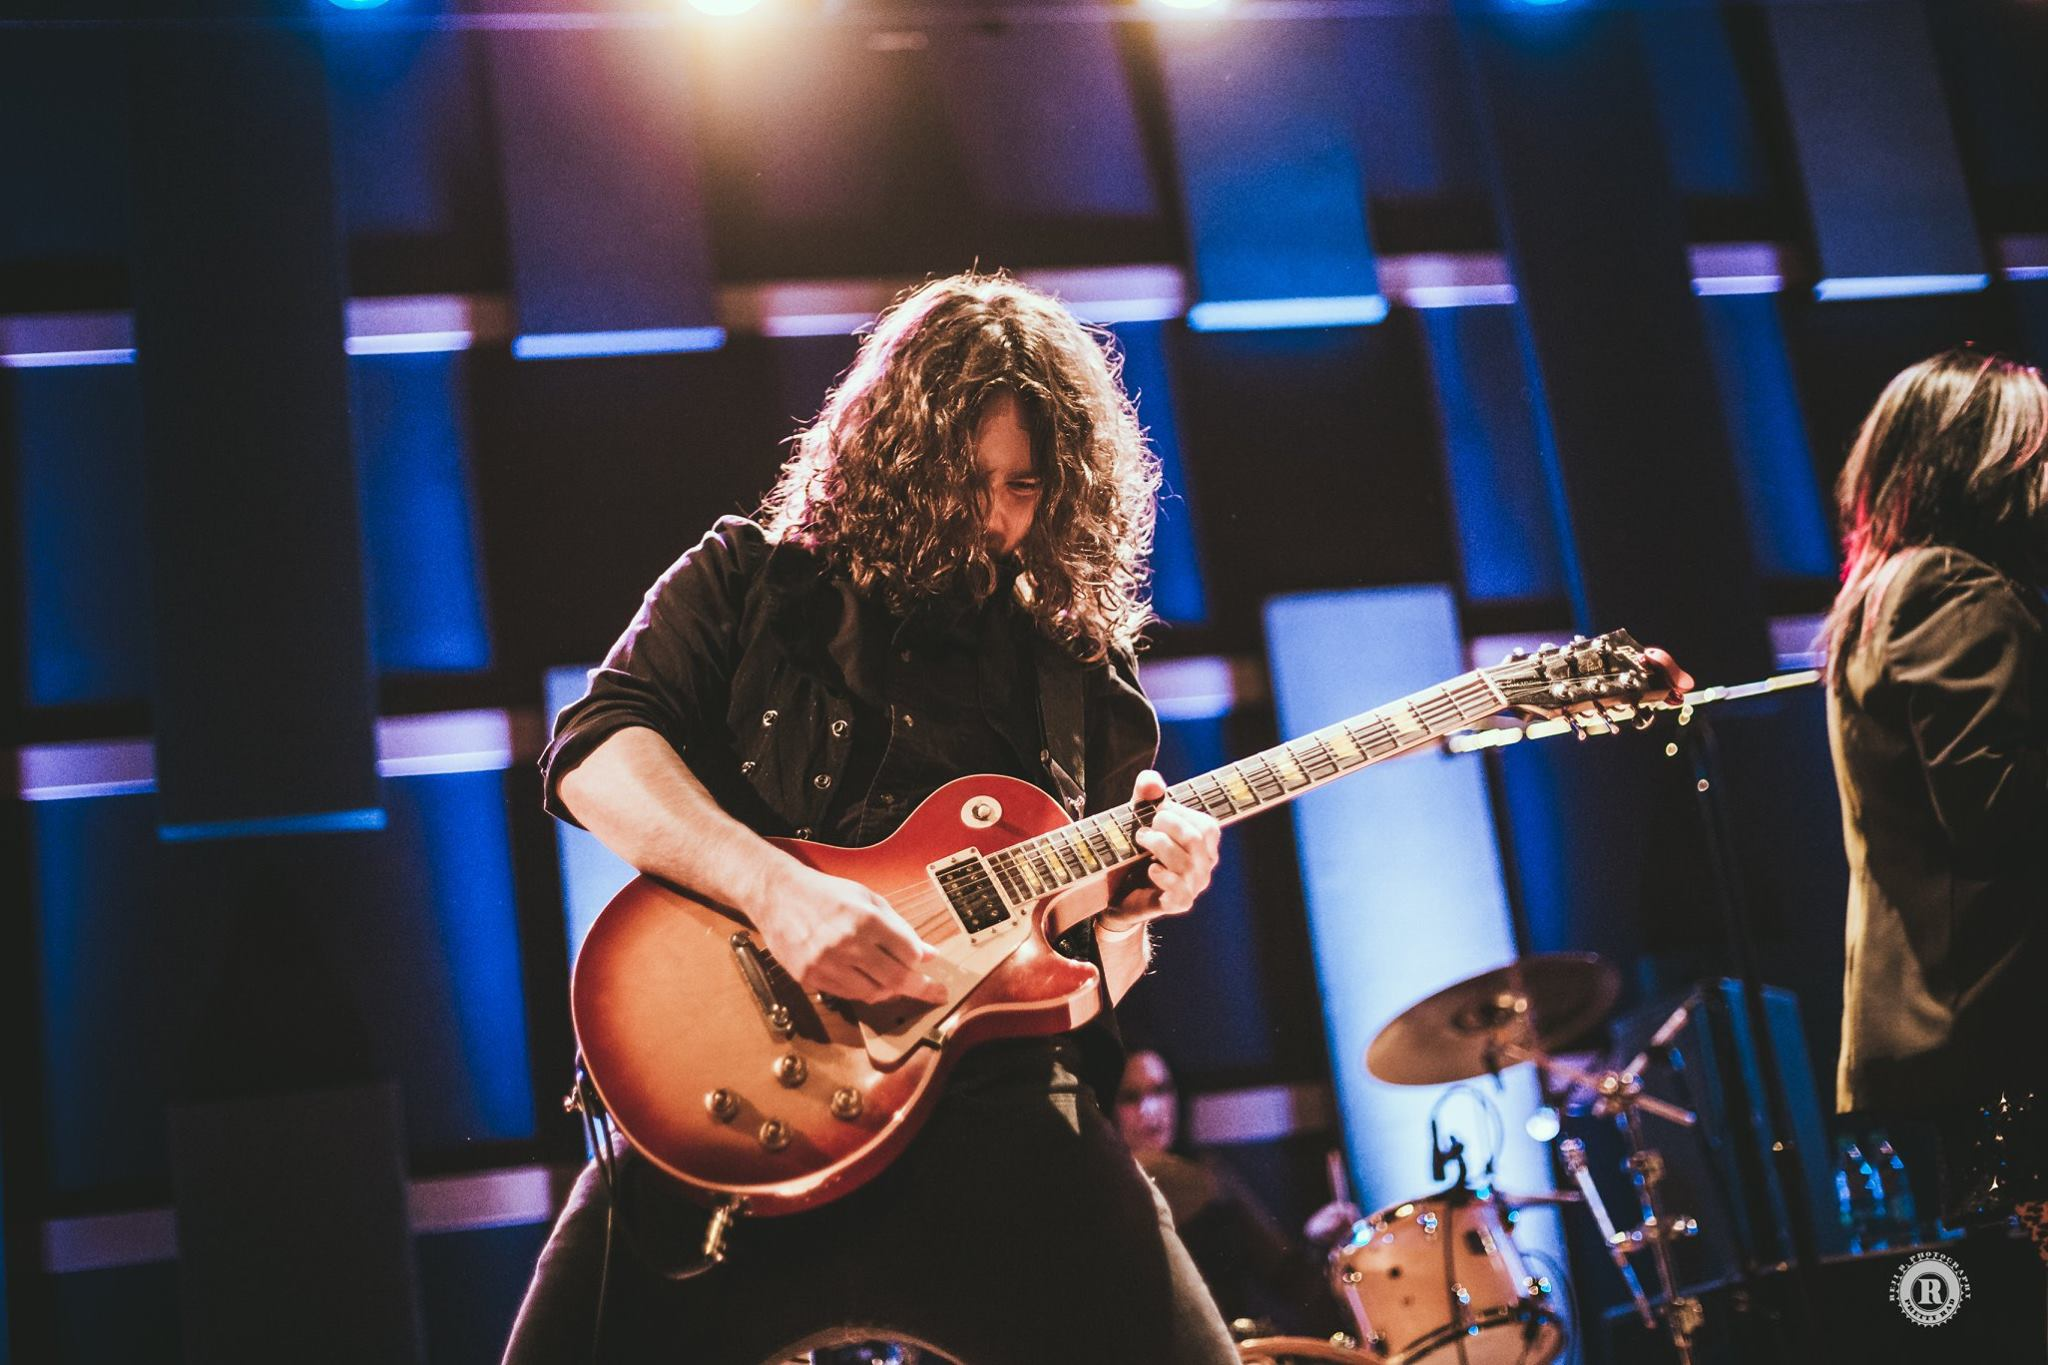 Mike Reisman : Lead guitarist and vocalist for Soraia. His fierce, searing guitars add the melody and magic to the music. The band's energetic, intoxicating live show is felt through Mansour's and Reisman's interactions on stage.